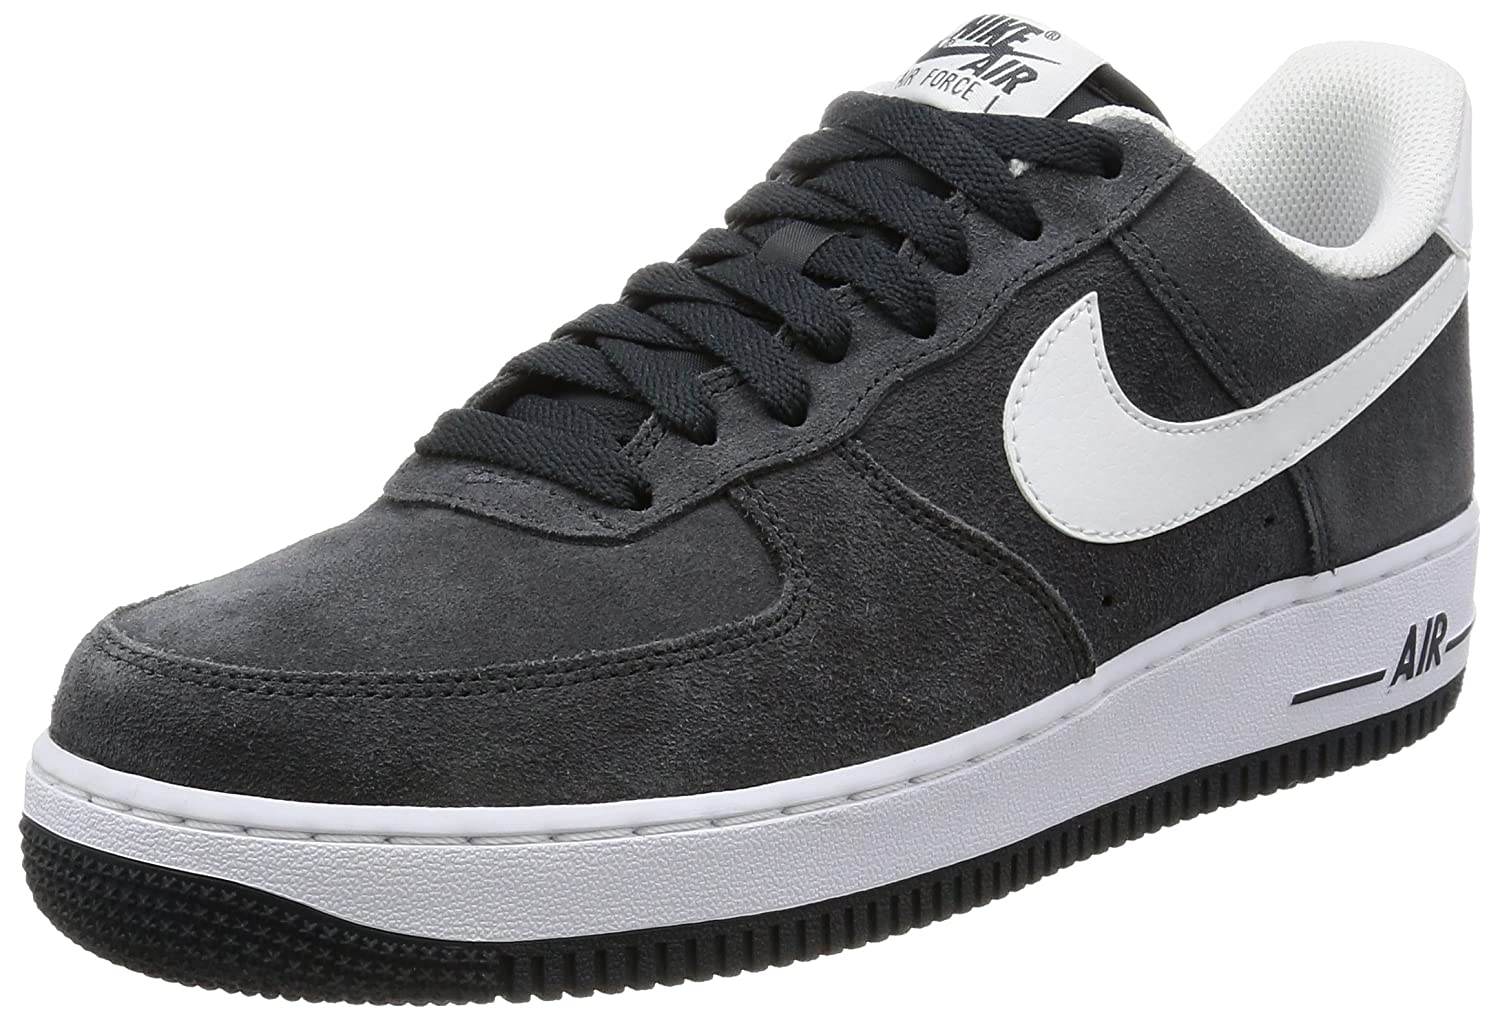 Nike Men's AIR Force 1 07 Basketball Shoes